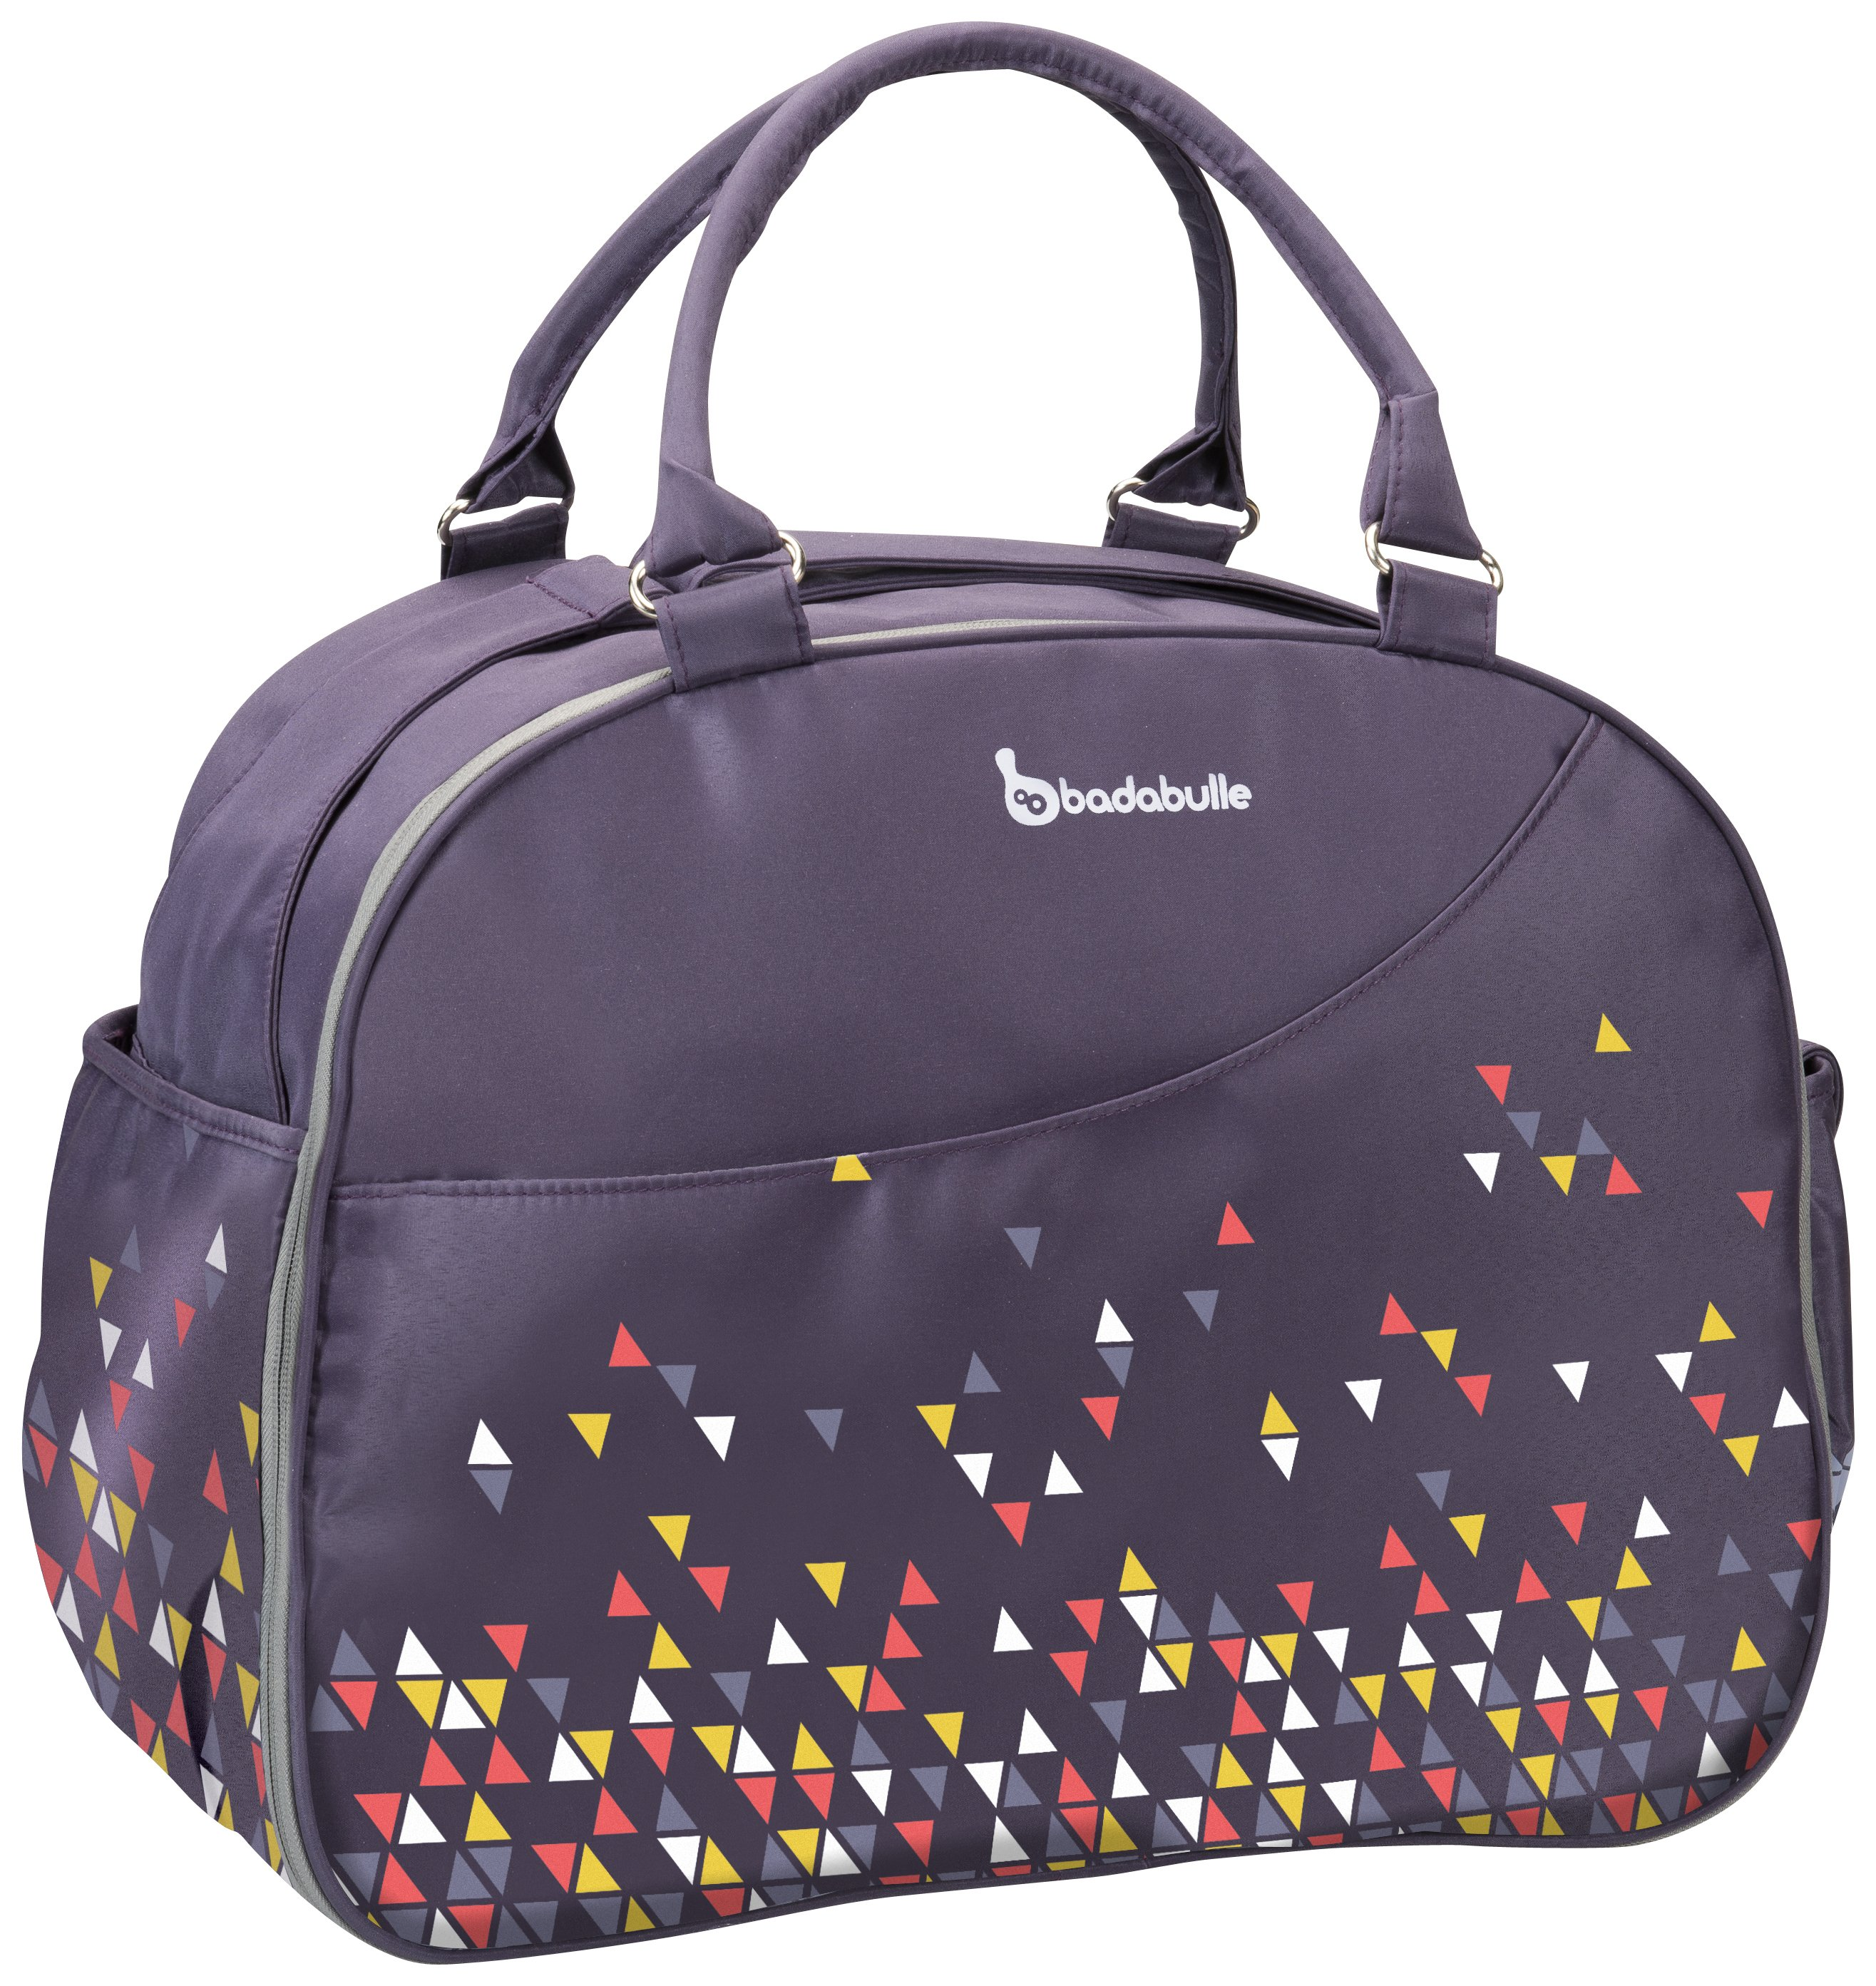 Image of Badabulle Weekend Changing Bag - Confetti Purple.